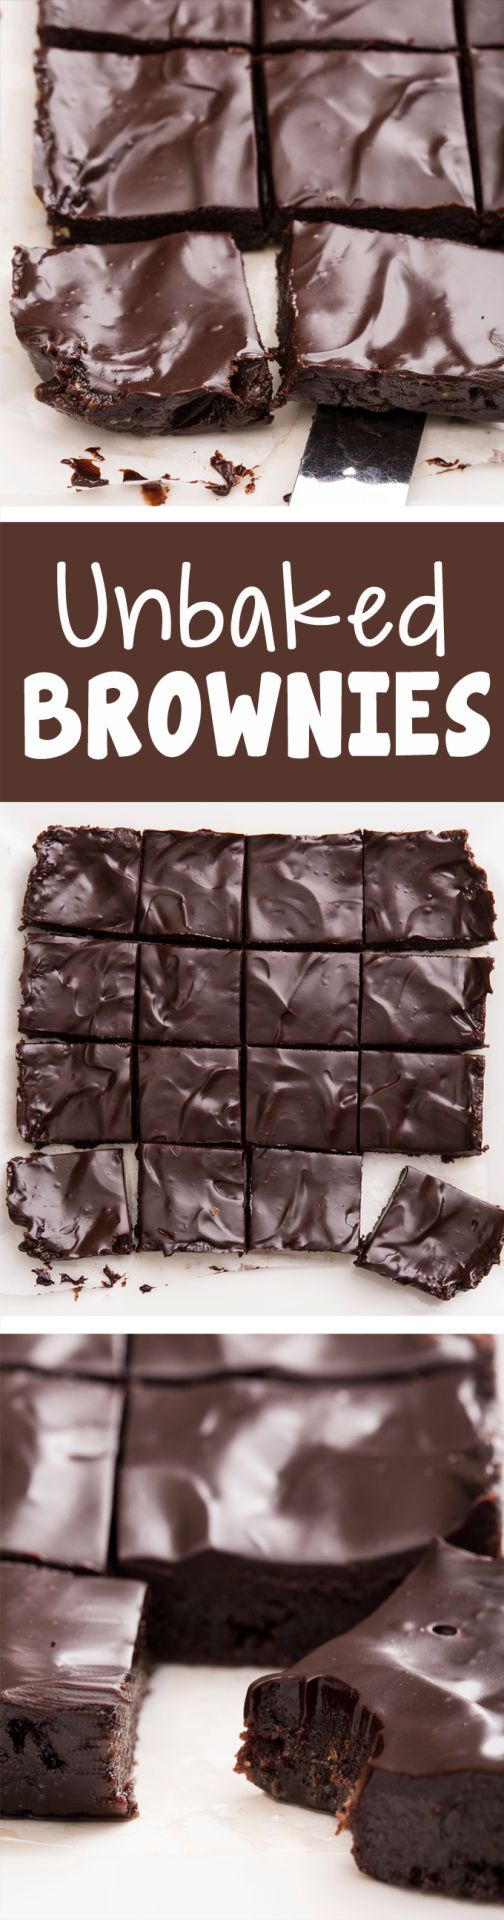 DIY Unbaked Vegan Brownies.Make these DIY Unbaked Brownies in about 5 minutes. The unbaked brownies can be: • gluten free • egg free • dairy free • soy free • vegan Note: cashews or almonds can be substituted for walnuts For lots more Brownie Recipes...